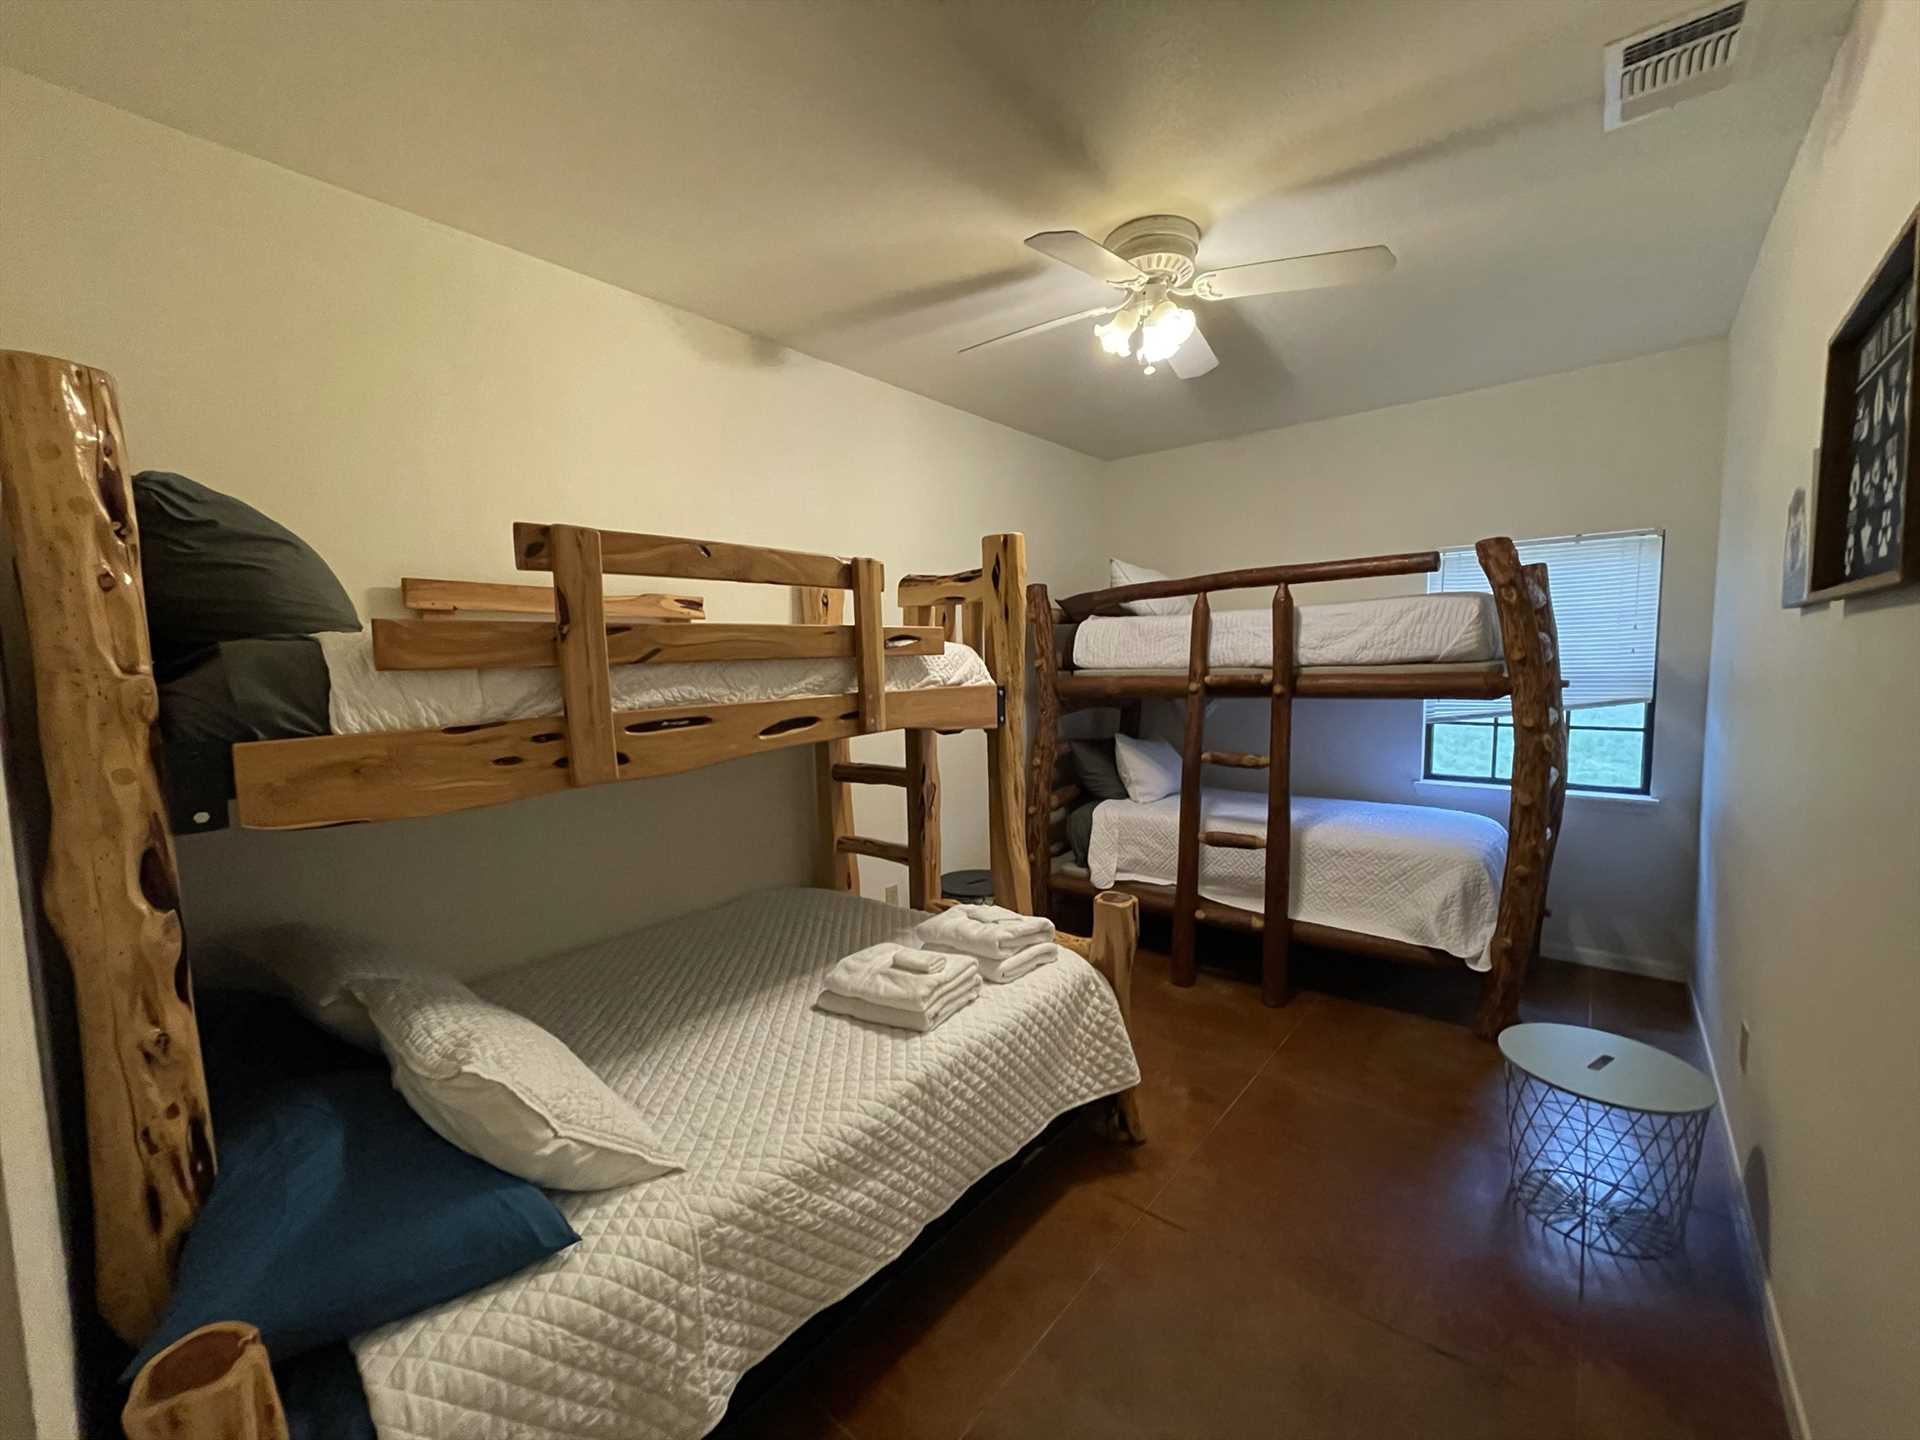 The two bunk bed sets in this bedroom provide a fun and comfortable place for the kids in your group when they need to call it a night.